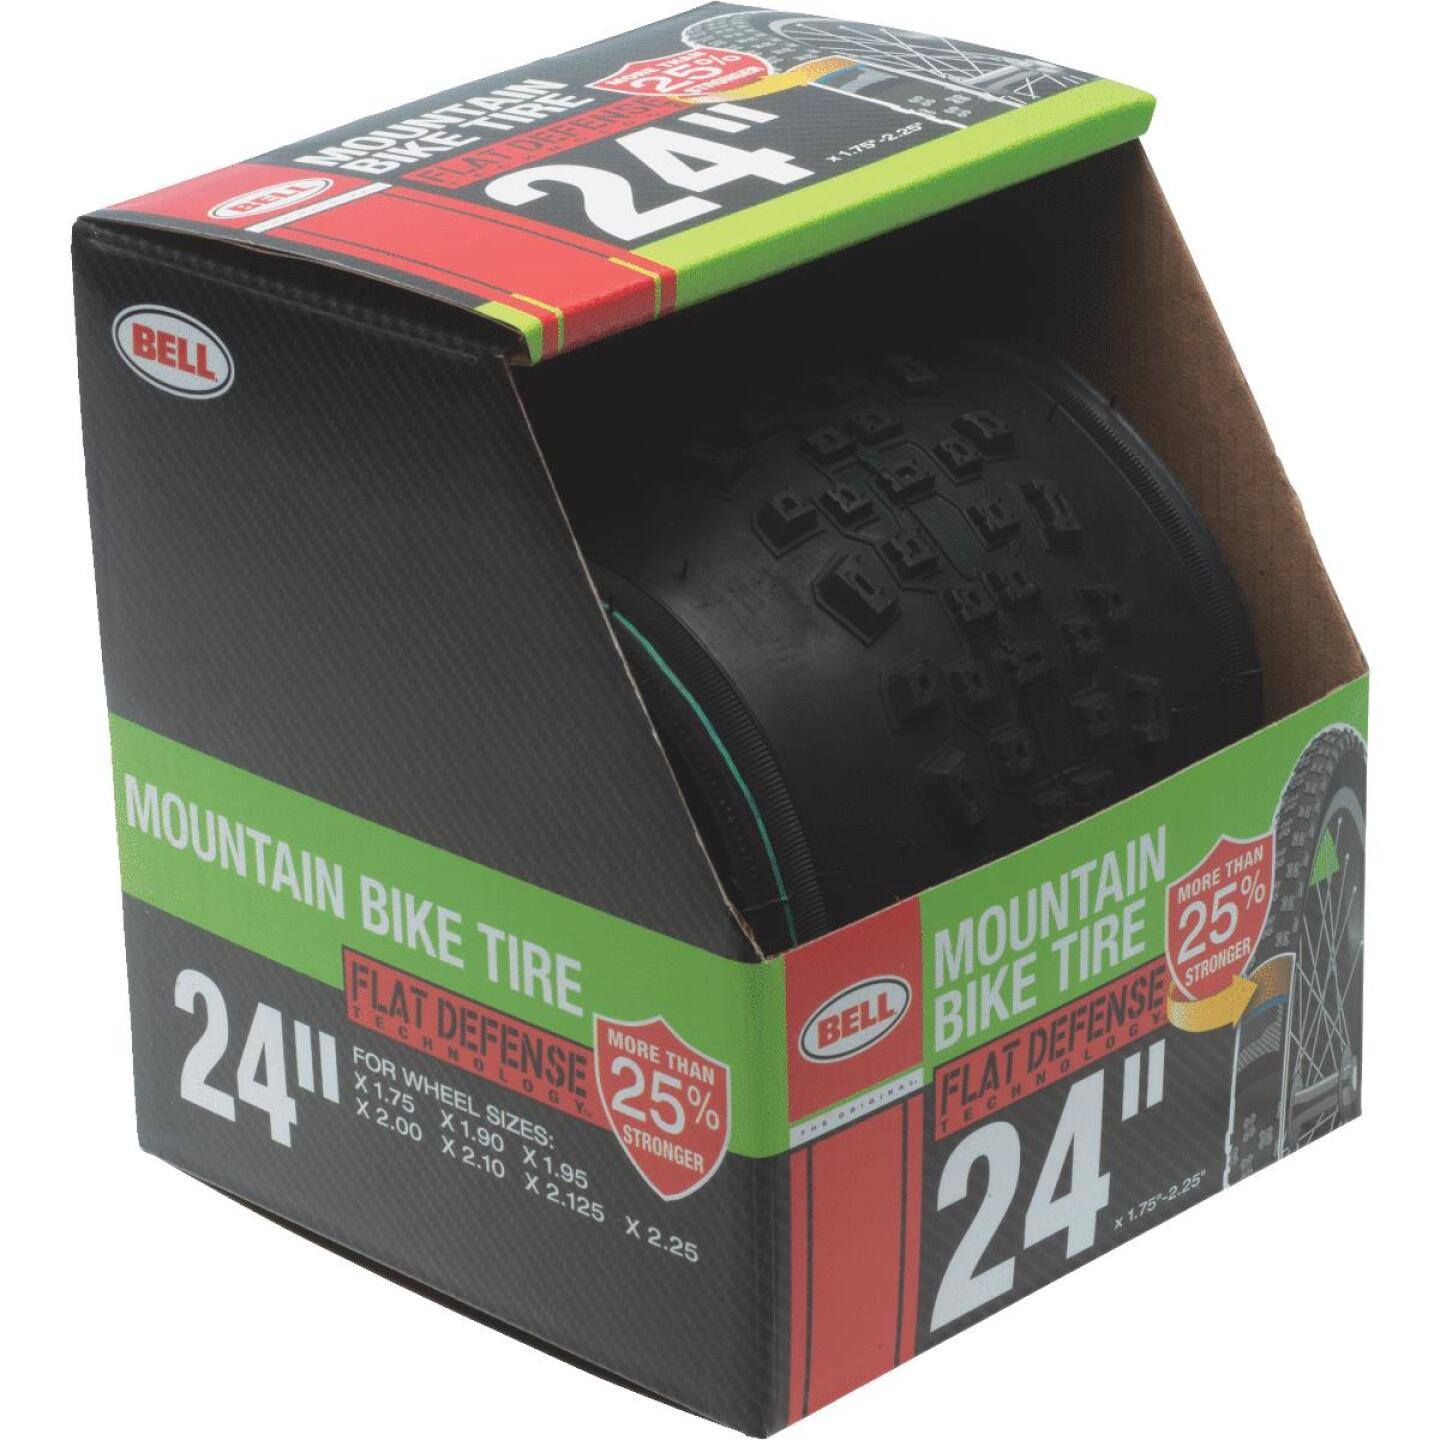 Bell 24 In. Mountain Bike Tire with Flat Defense Image 1